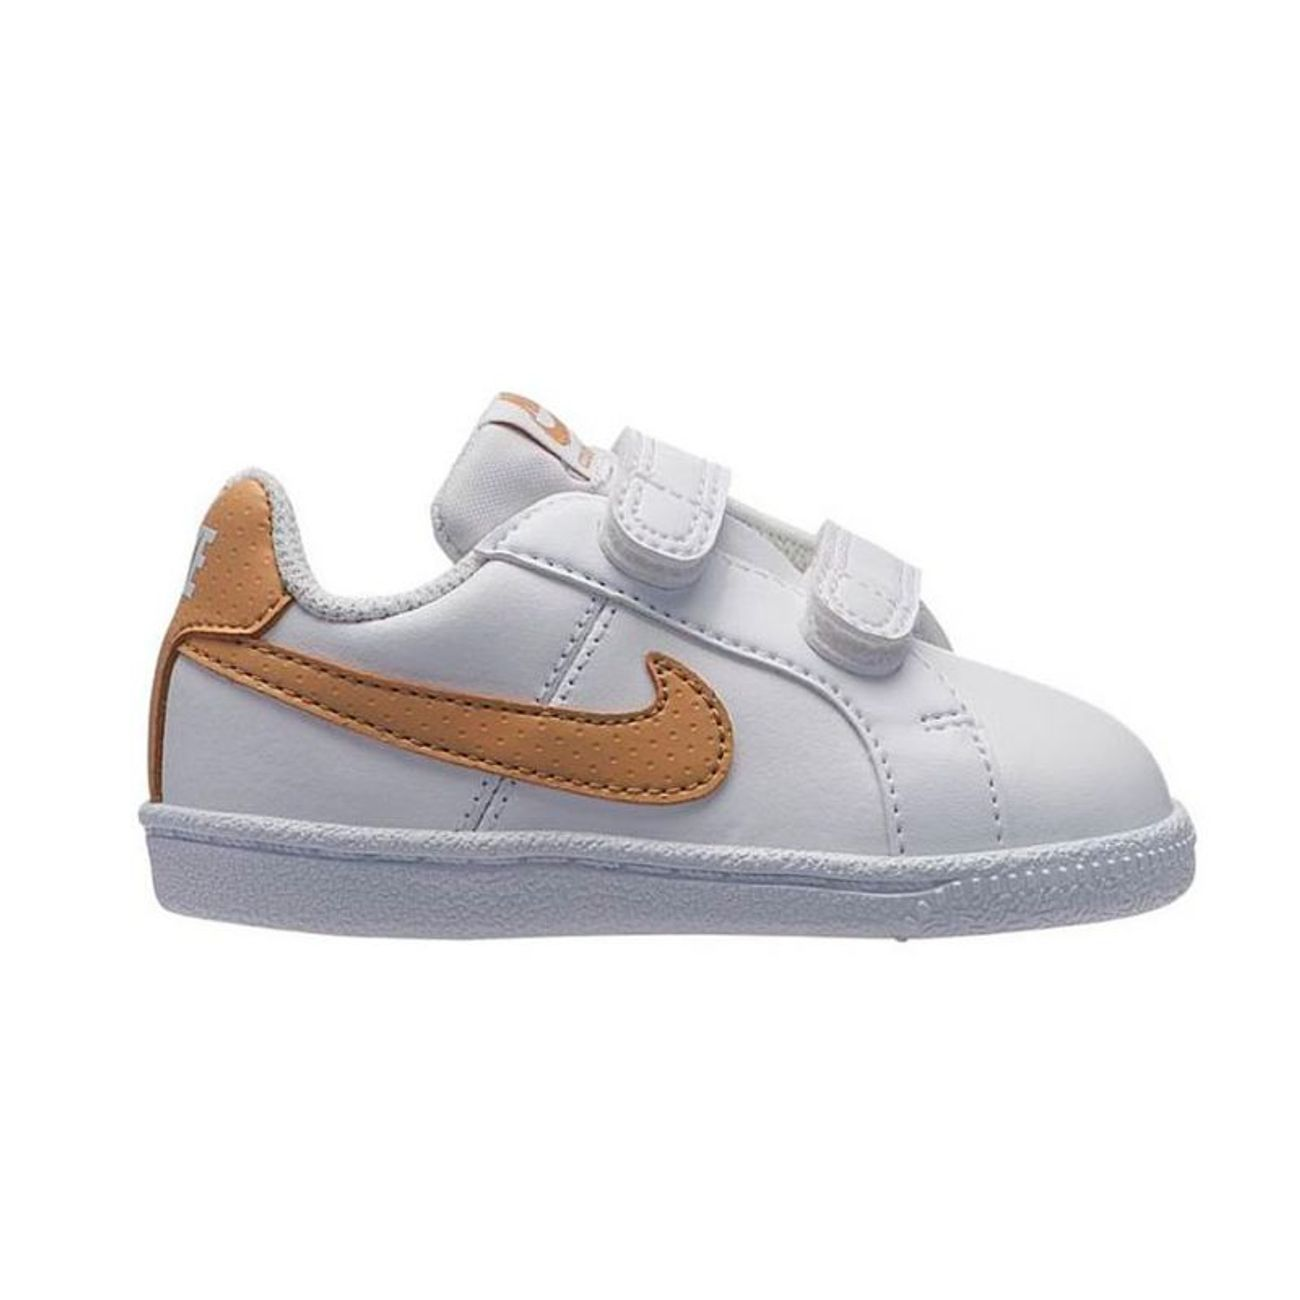 Adulte Junior Blanco Marron Nike Royale Ni833537 105 Padel Court lJ1TKcF